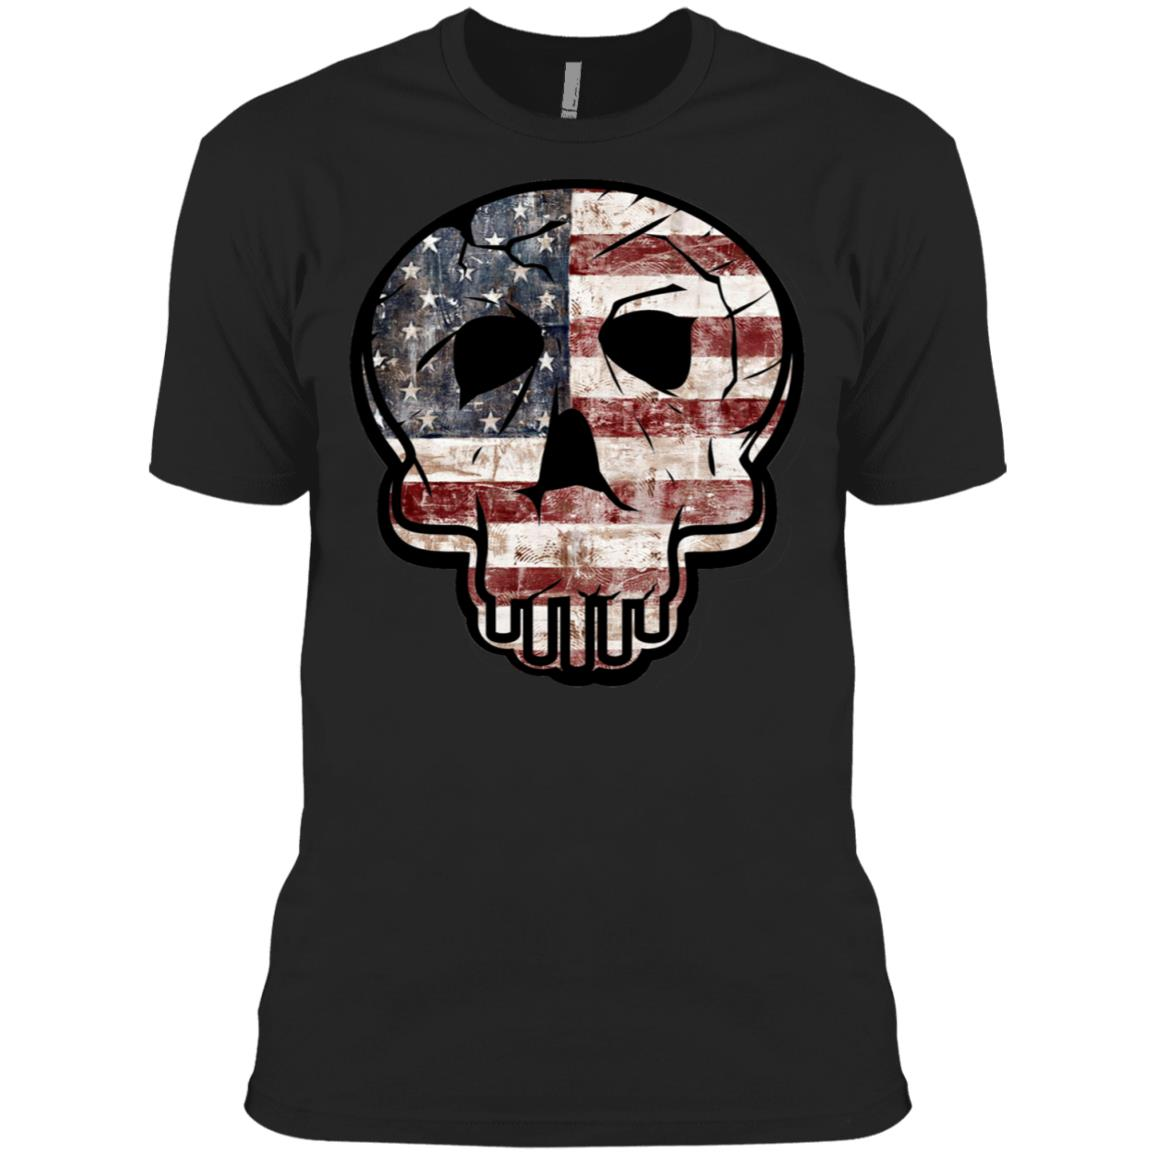 Skull Flag American Flag Veterans Day 3600A Next Level Men's Made in USA Cotton T-Shirt